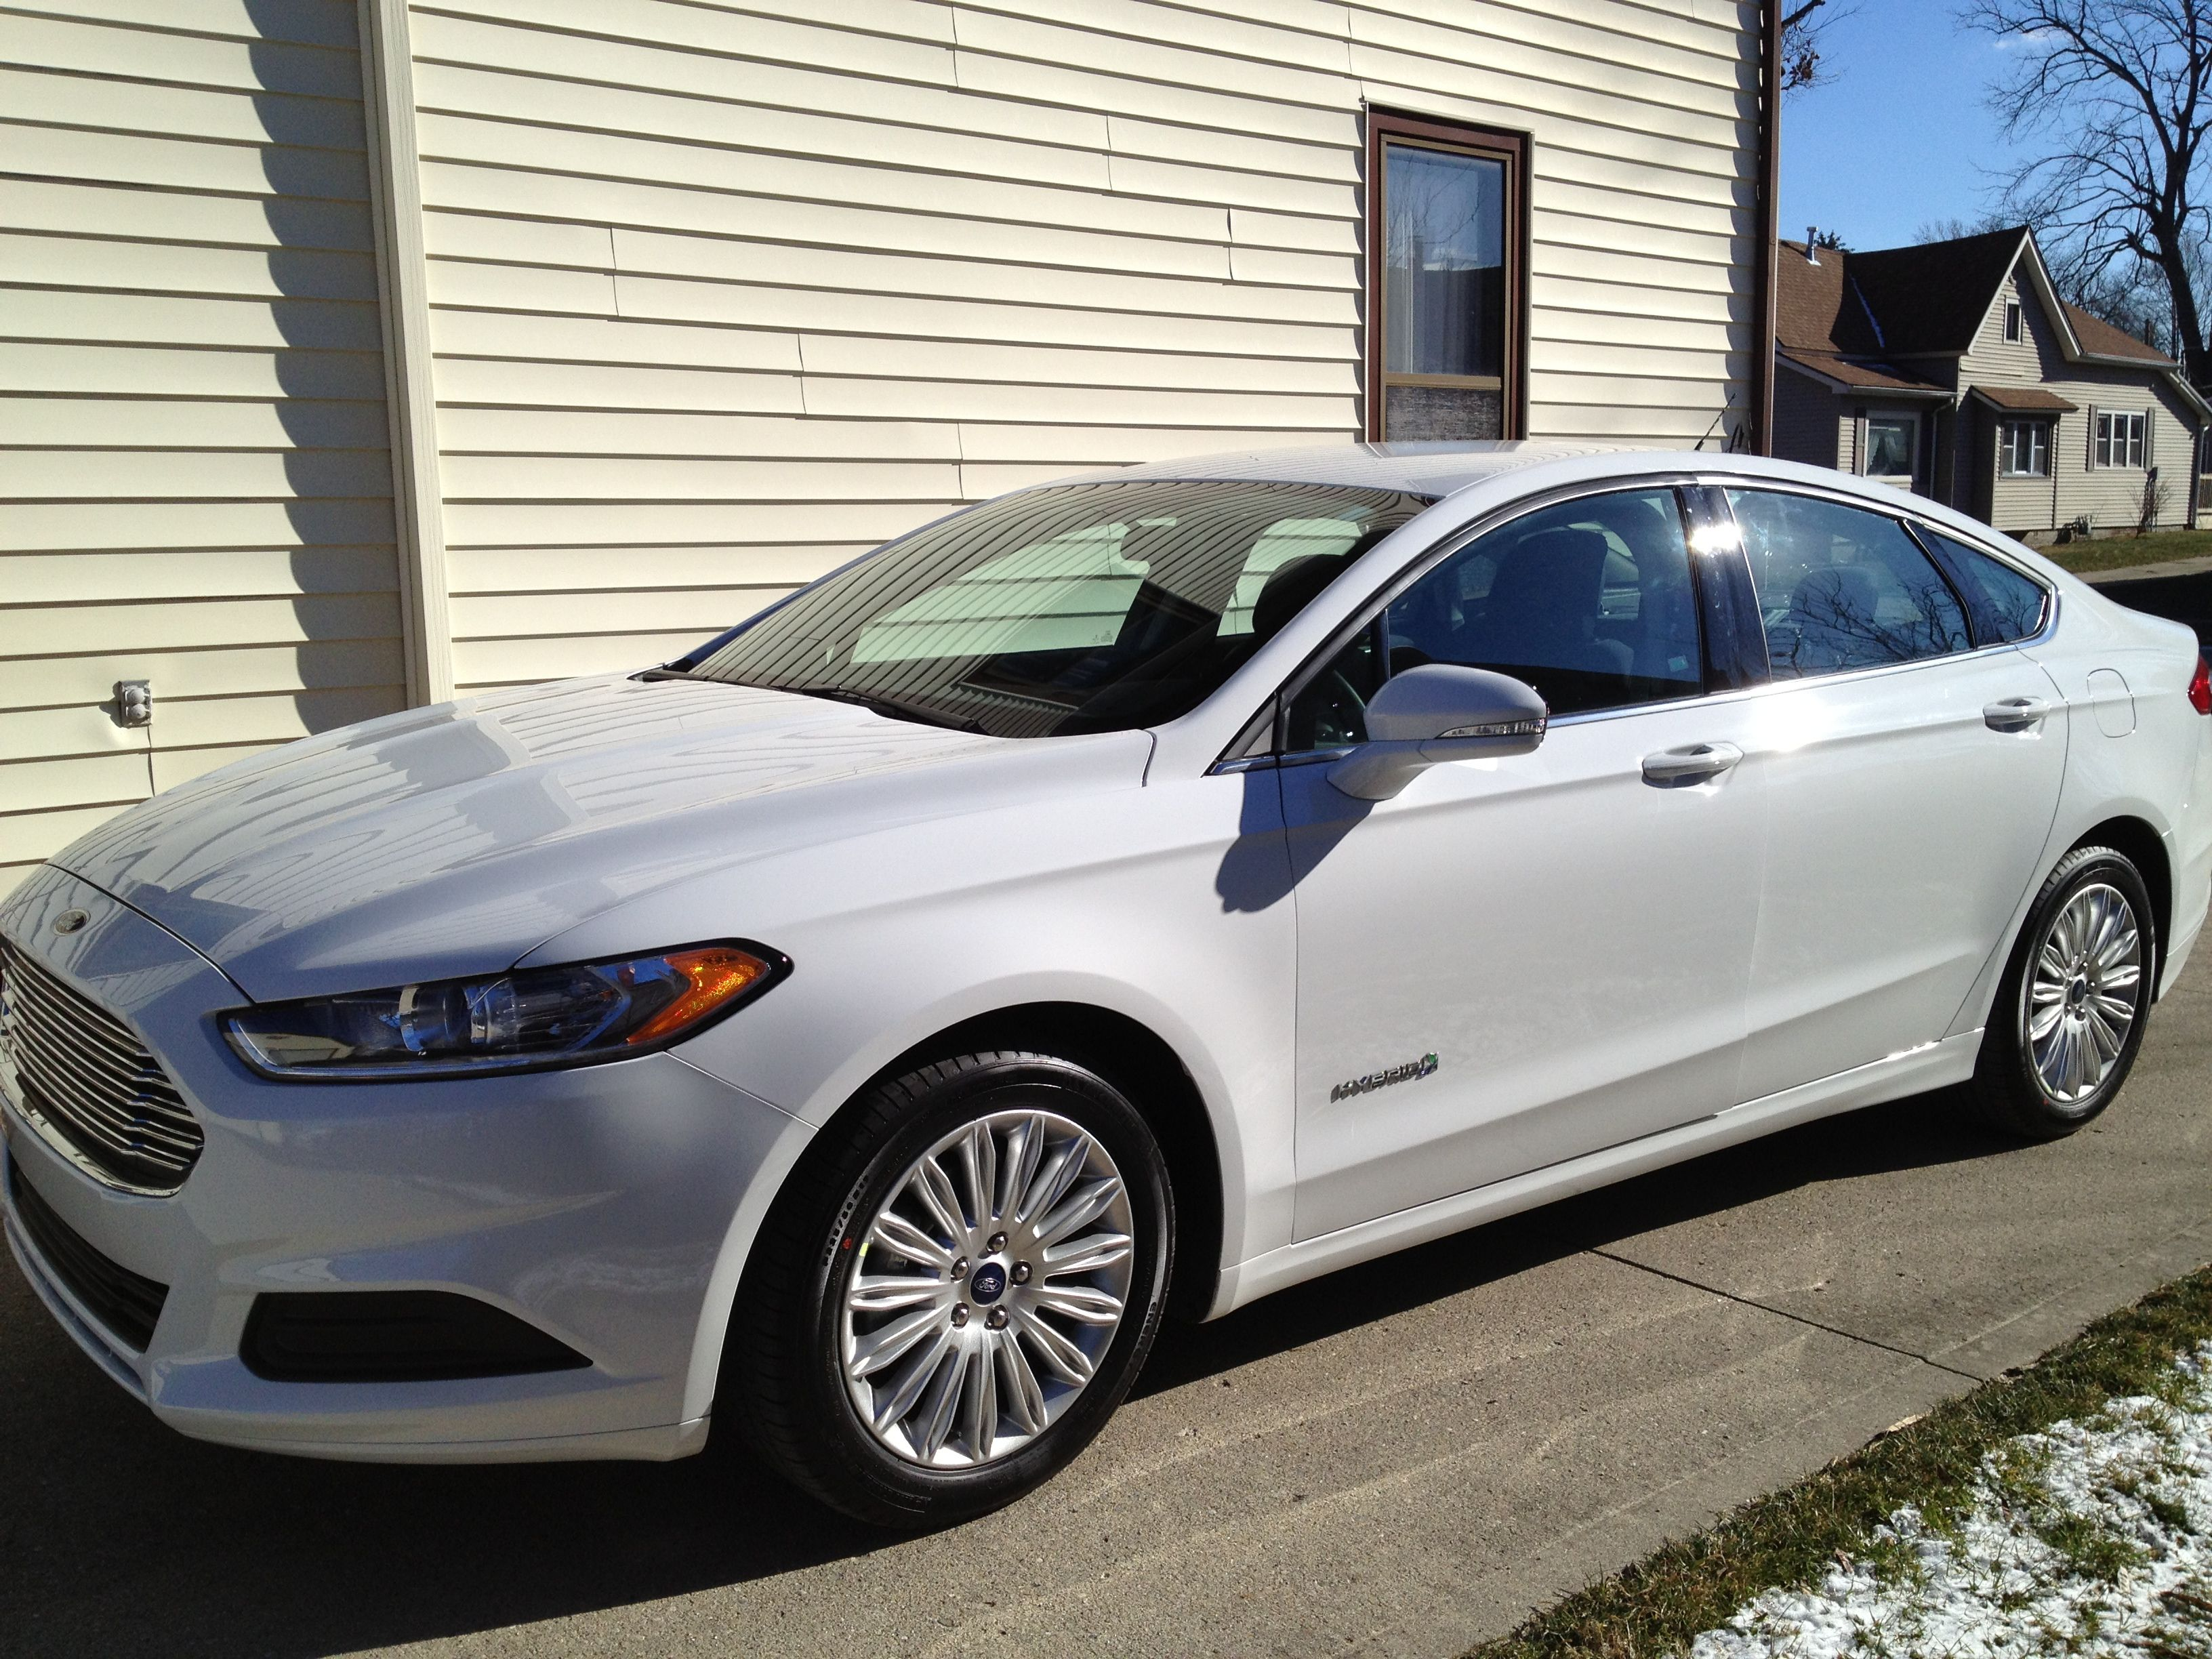 2013 Ford Fusion Hybrid Make It Black And Its Just Like Mine